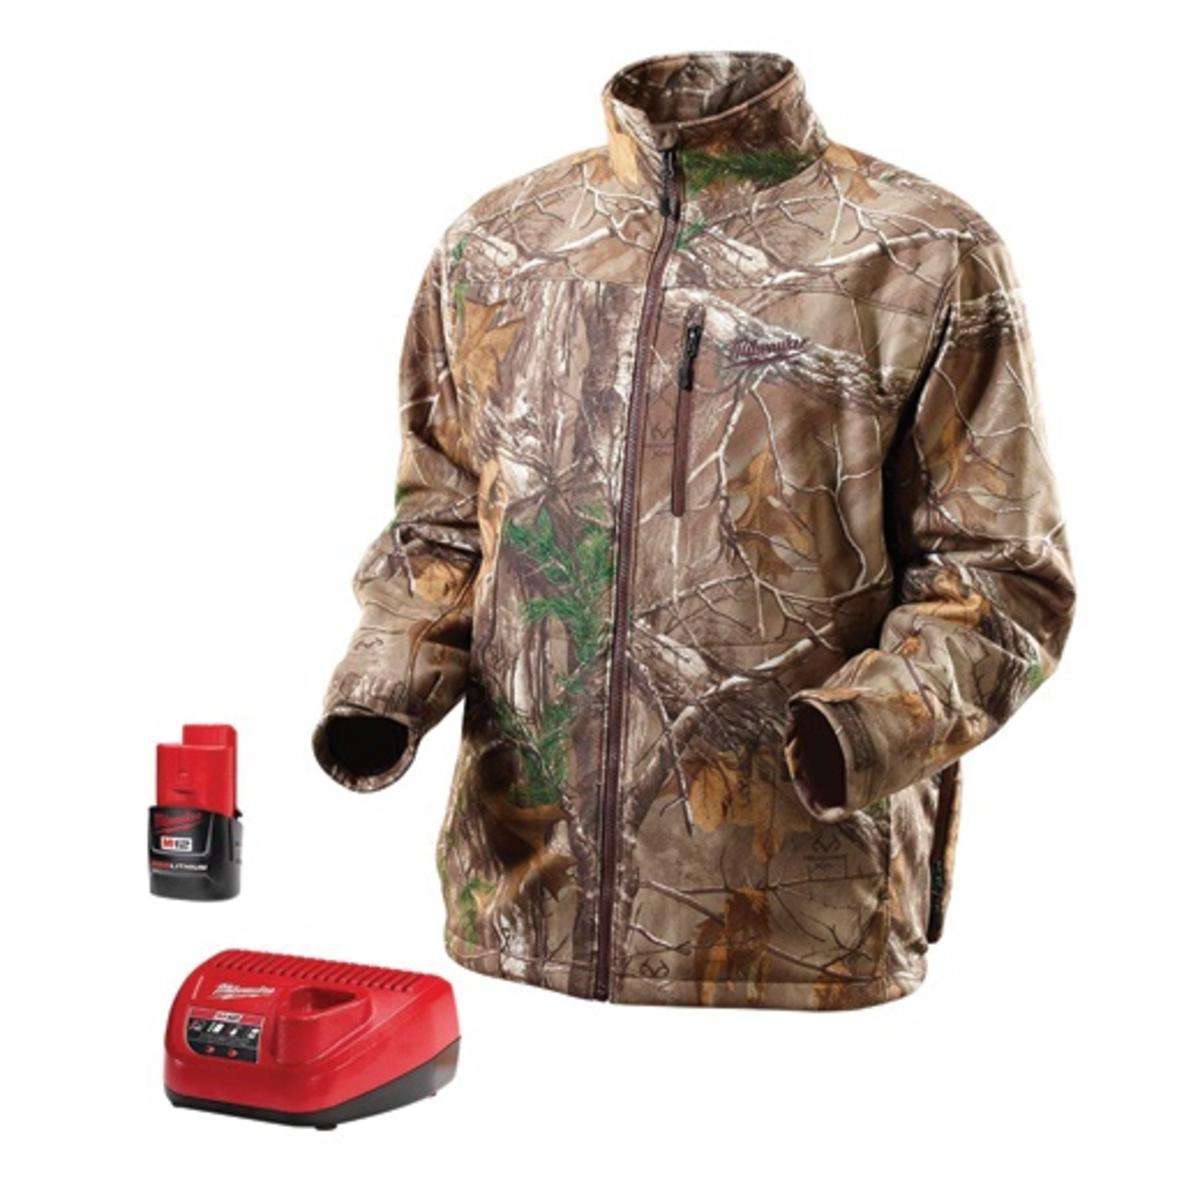 M12 Heated Jacket Milwaukee M12 Realtree Xtra Heated Jacket Kit